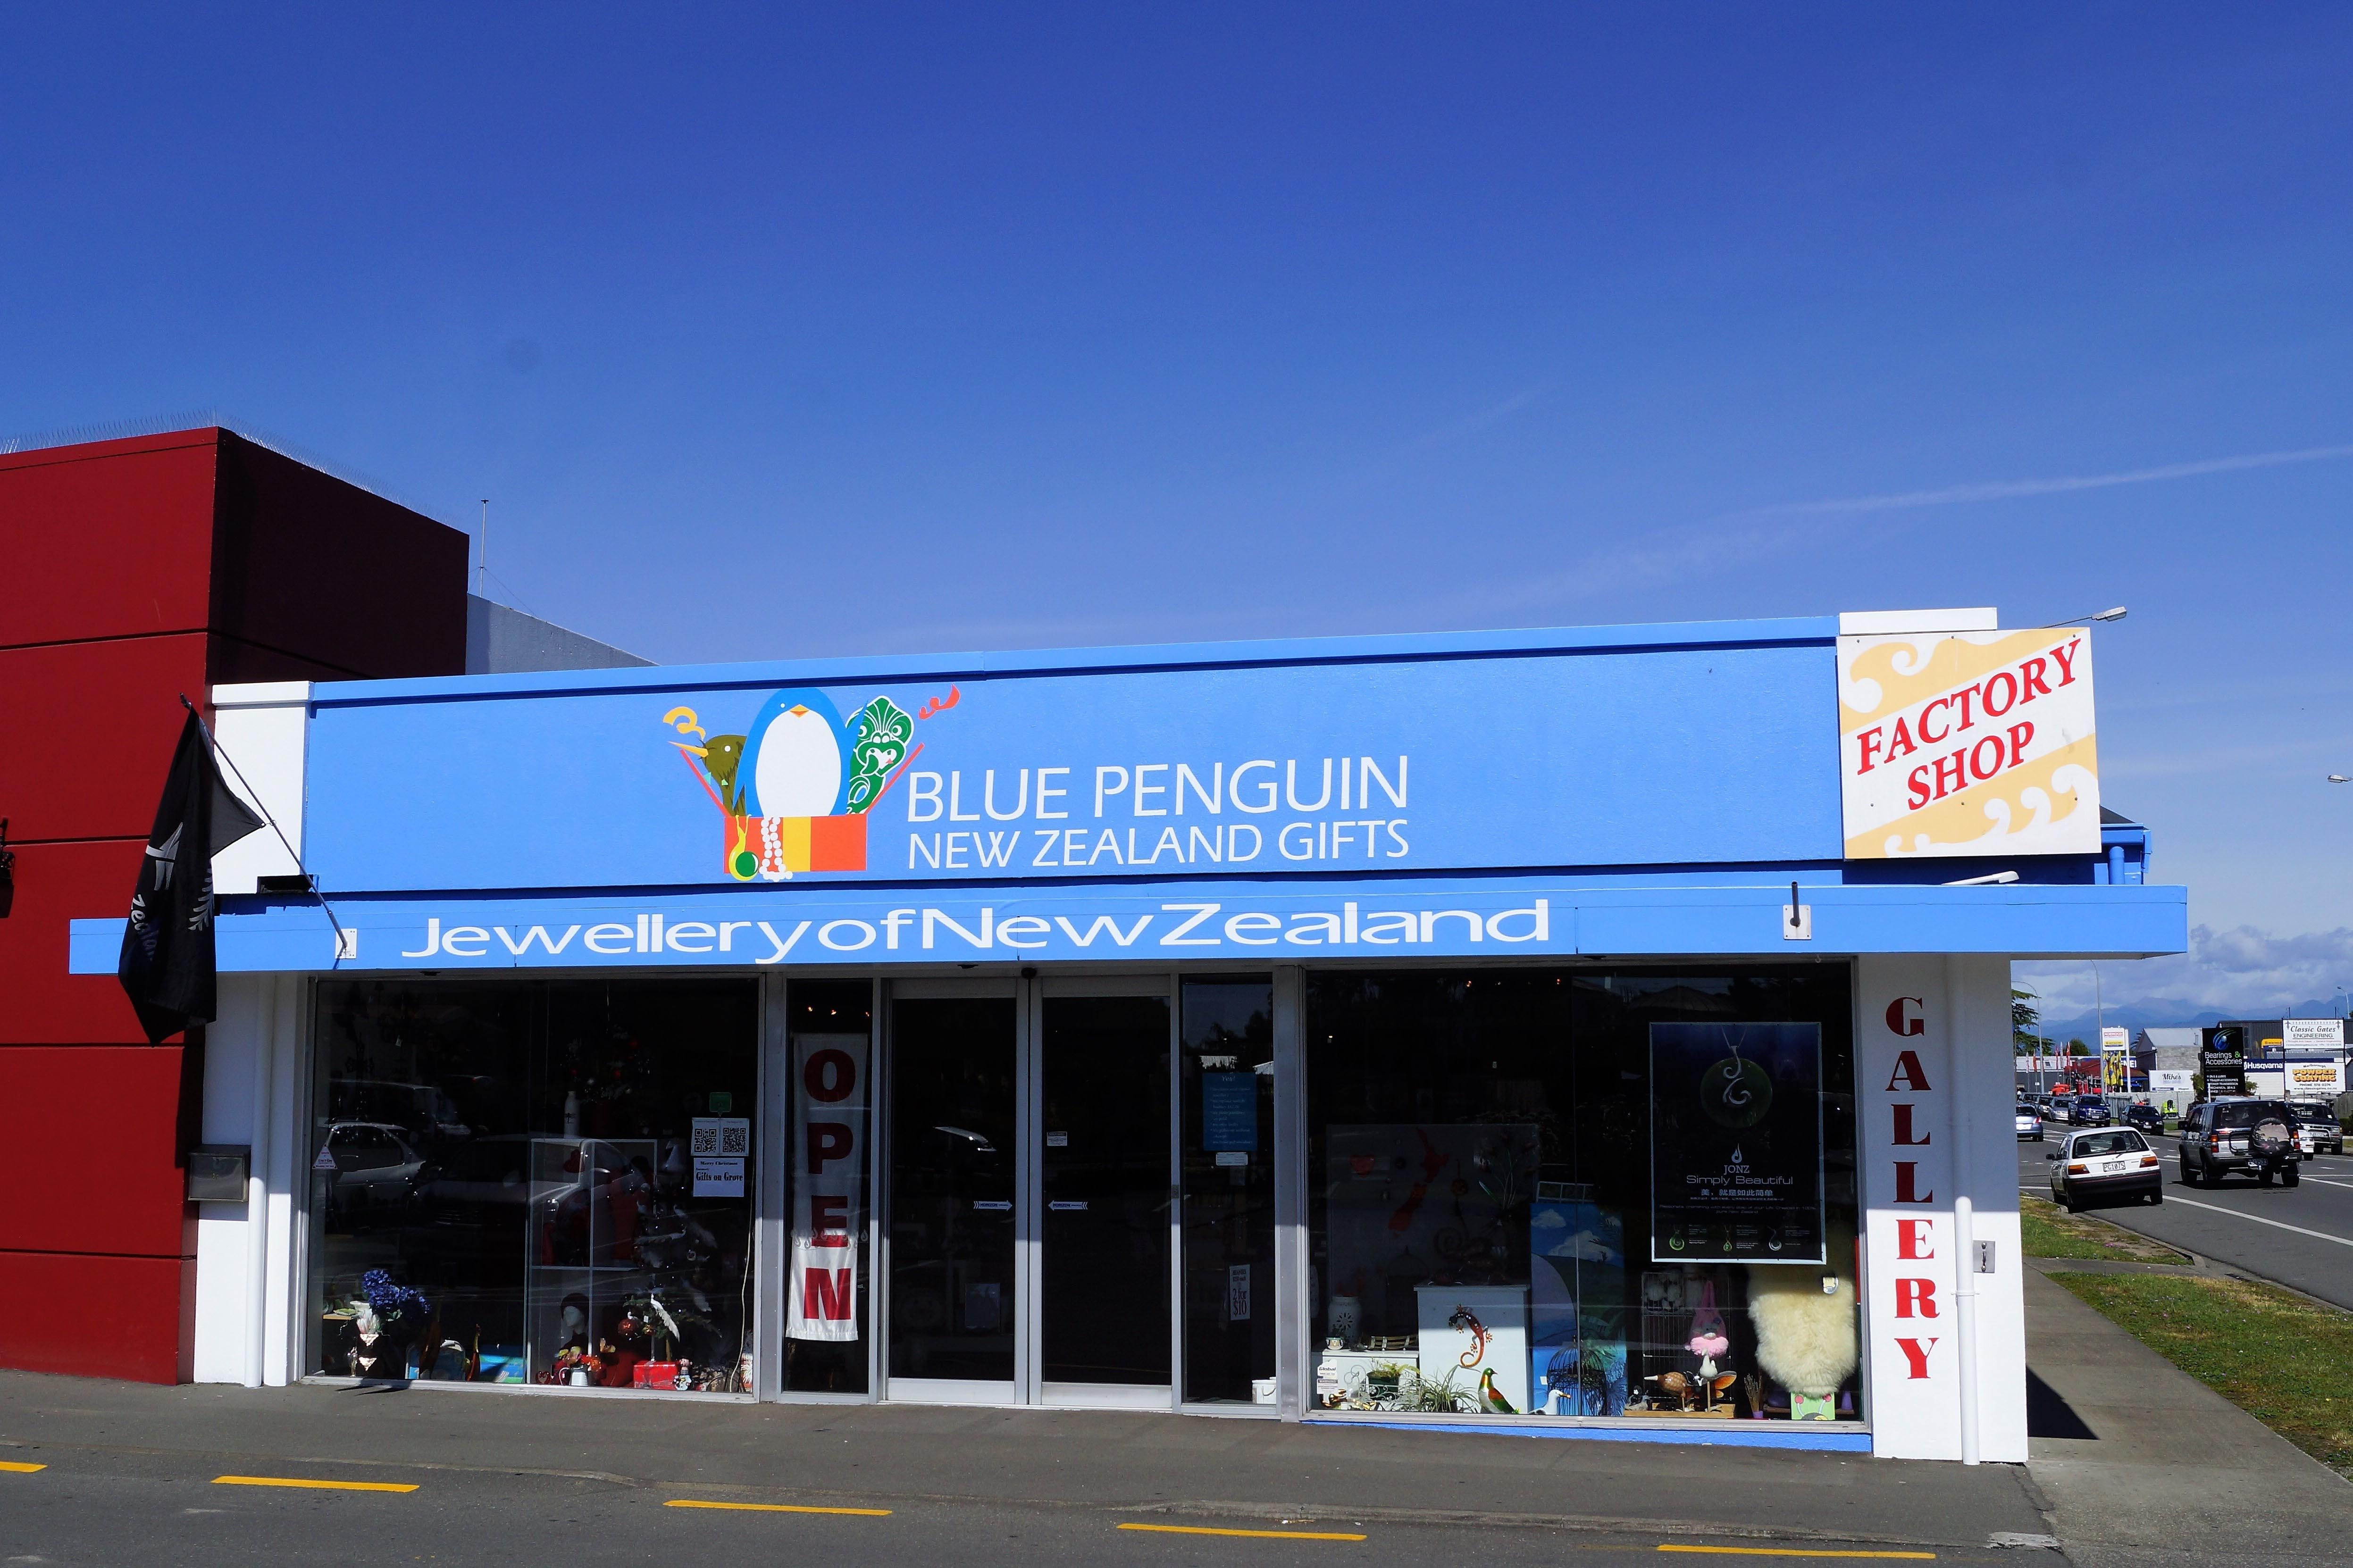 Jewellery of NZ - Blue Penguin Gifts